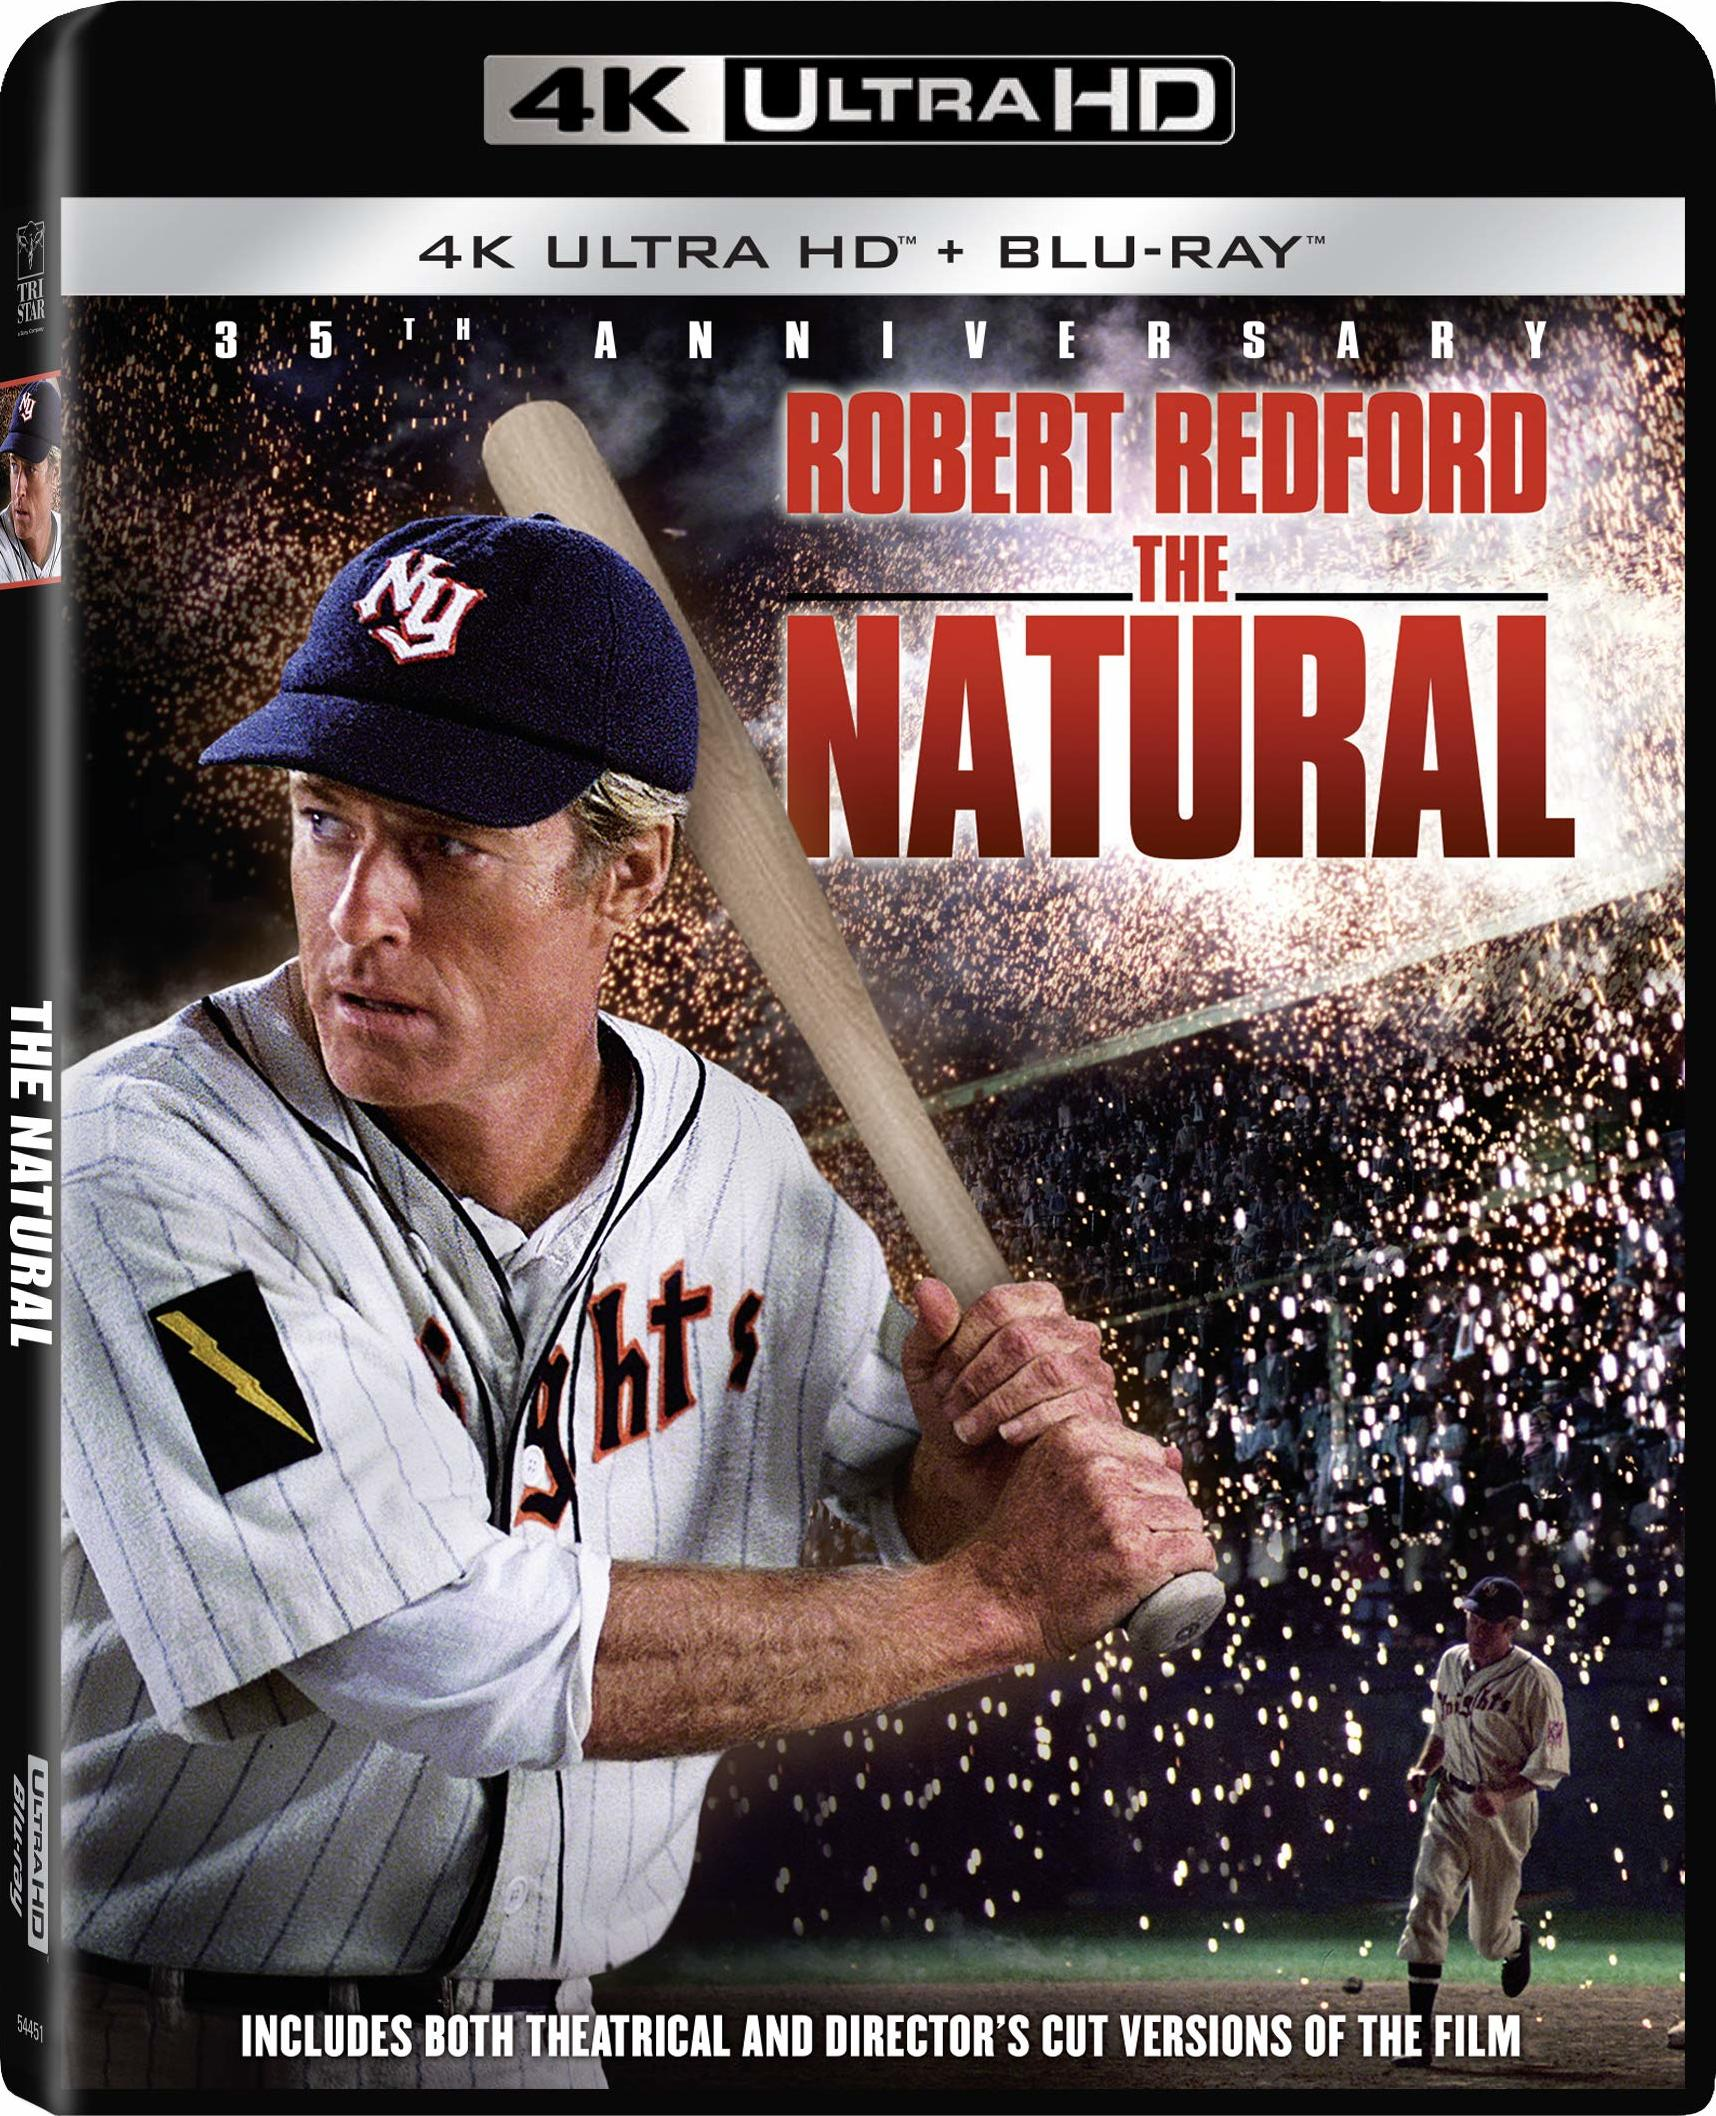 The Natural (35th Anniversary Edition)(4K Ultra HD Blu-ray)(Pre-order / Jun 4)